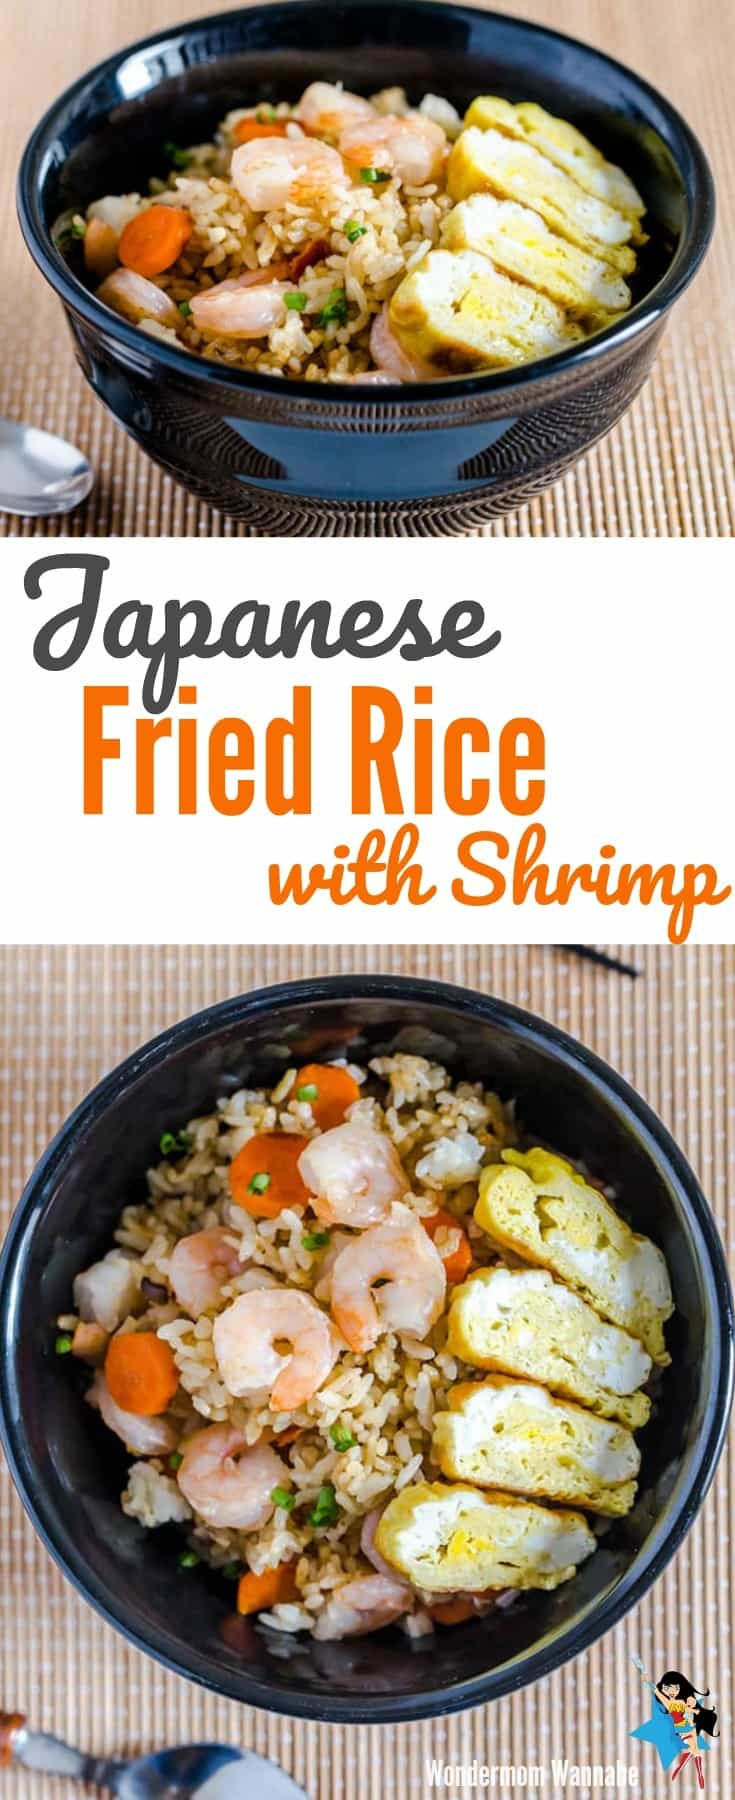 Get the amazing taste of Japanese fried rice for a fraction of the cost by skipping the hibachi steakhouse and making it at home.